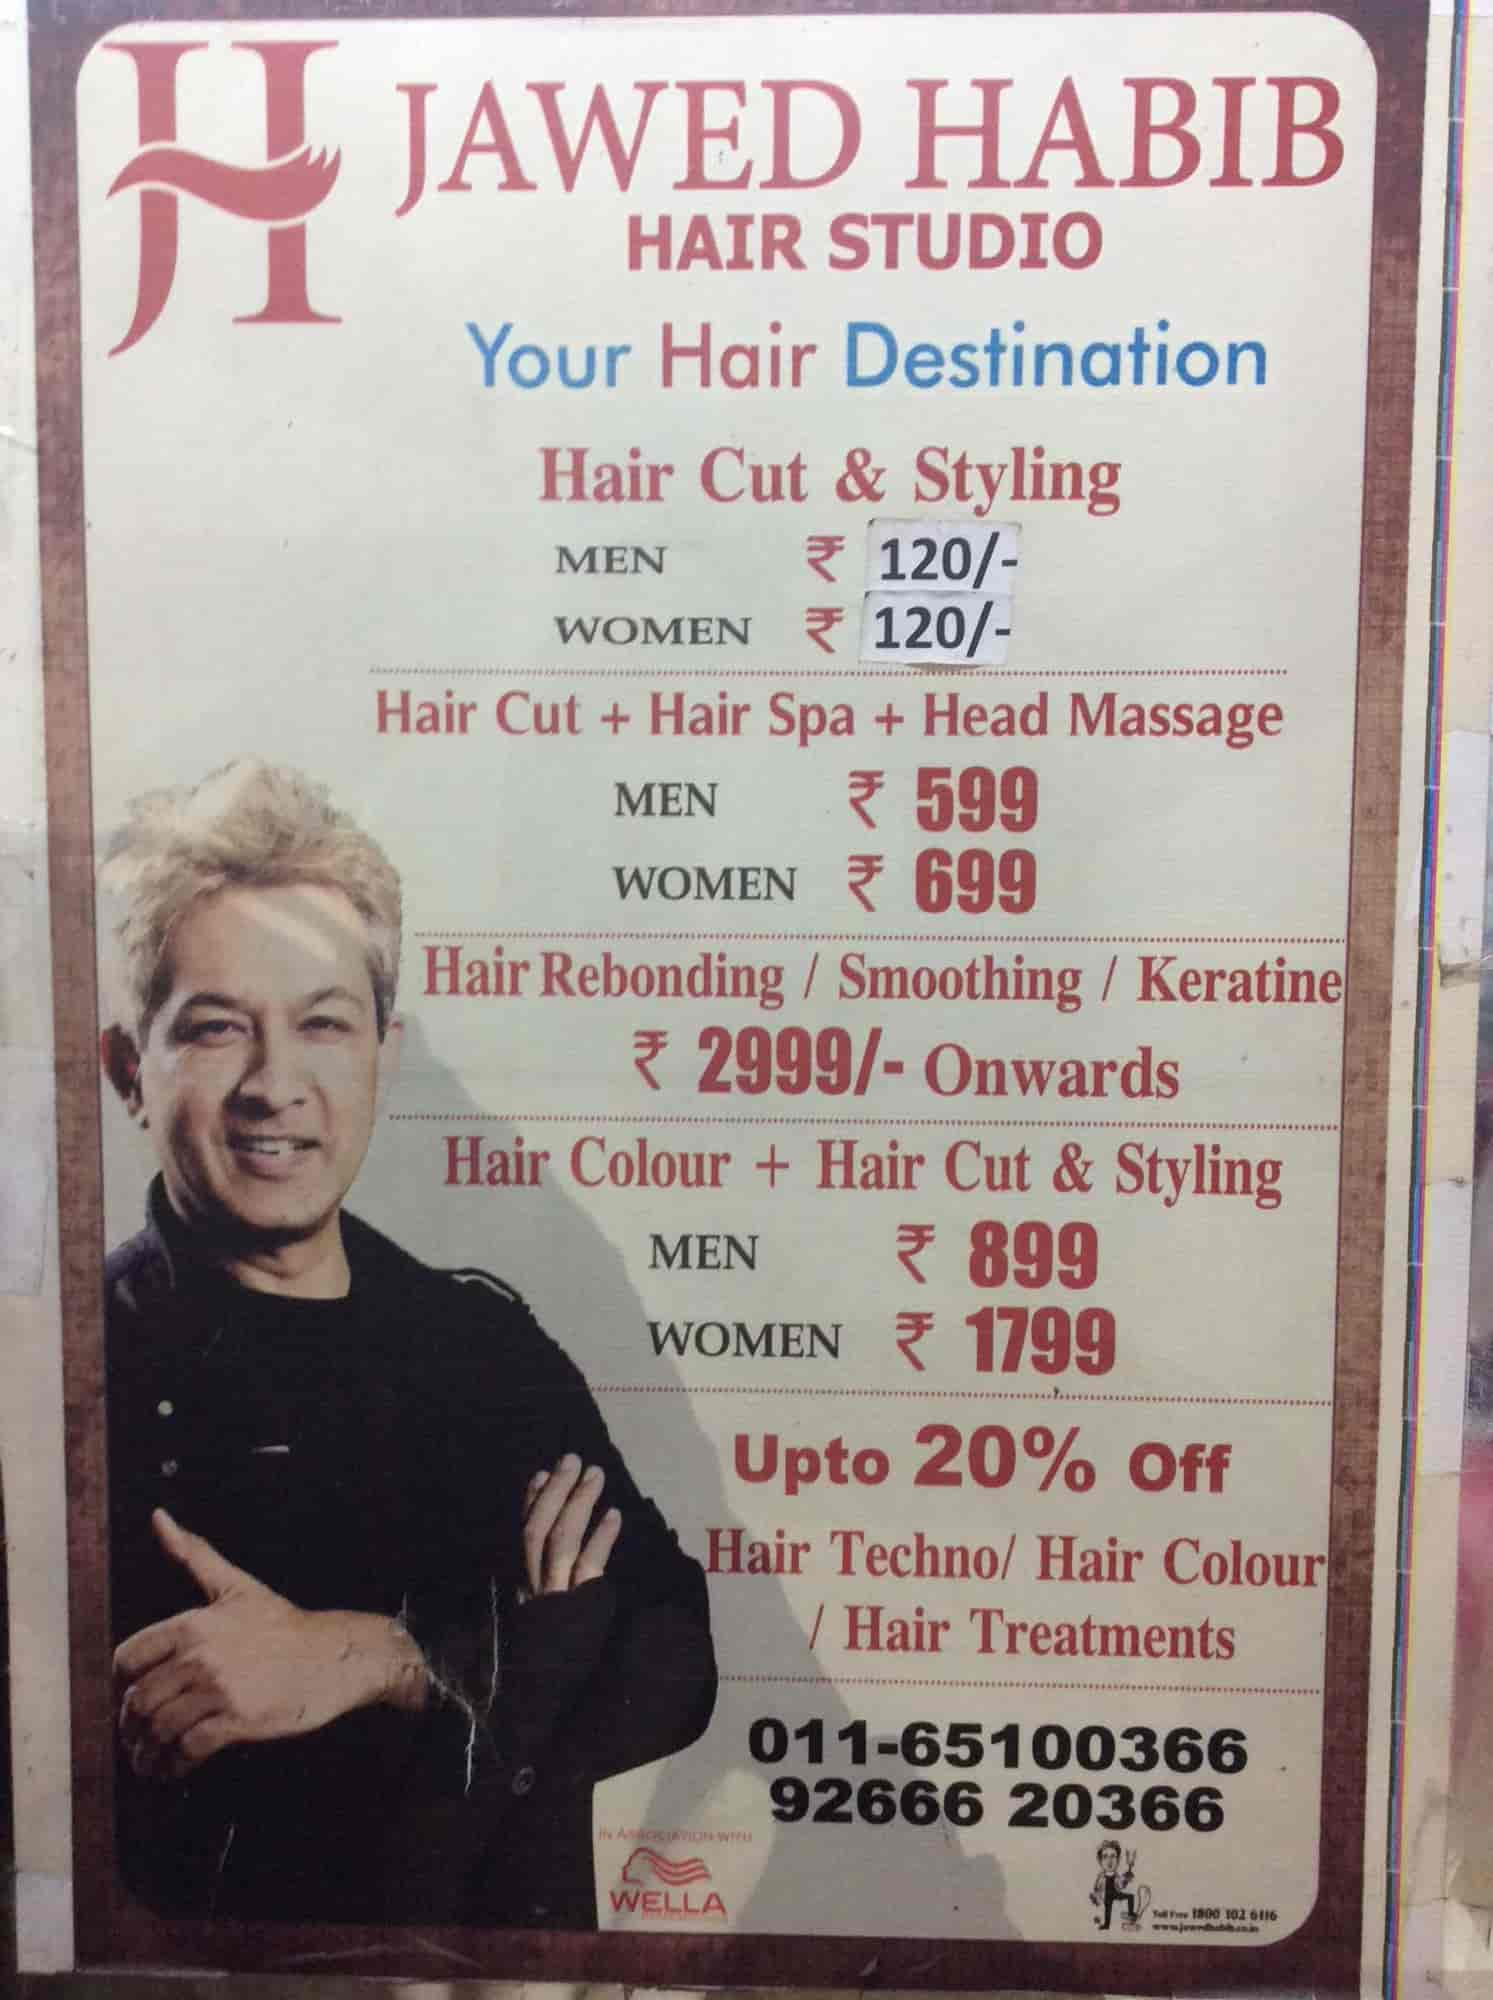 jawed habib hair studio, laxmi nagar - javed habib hair studio